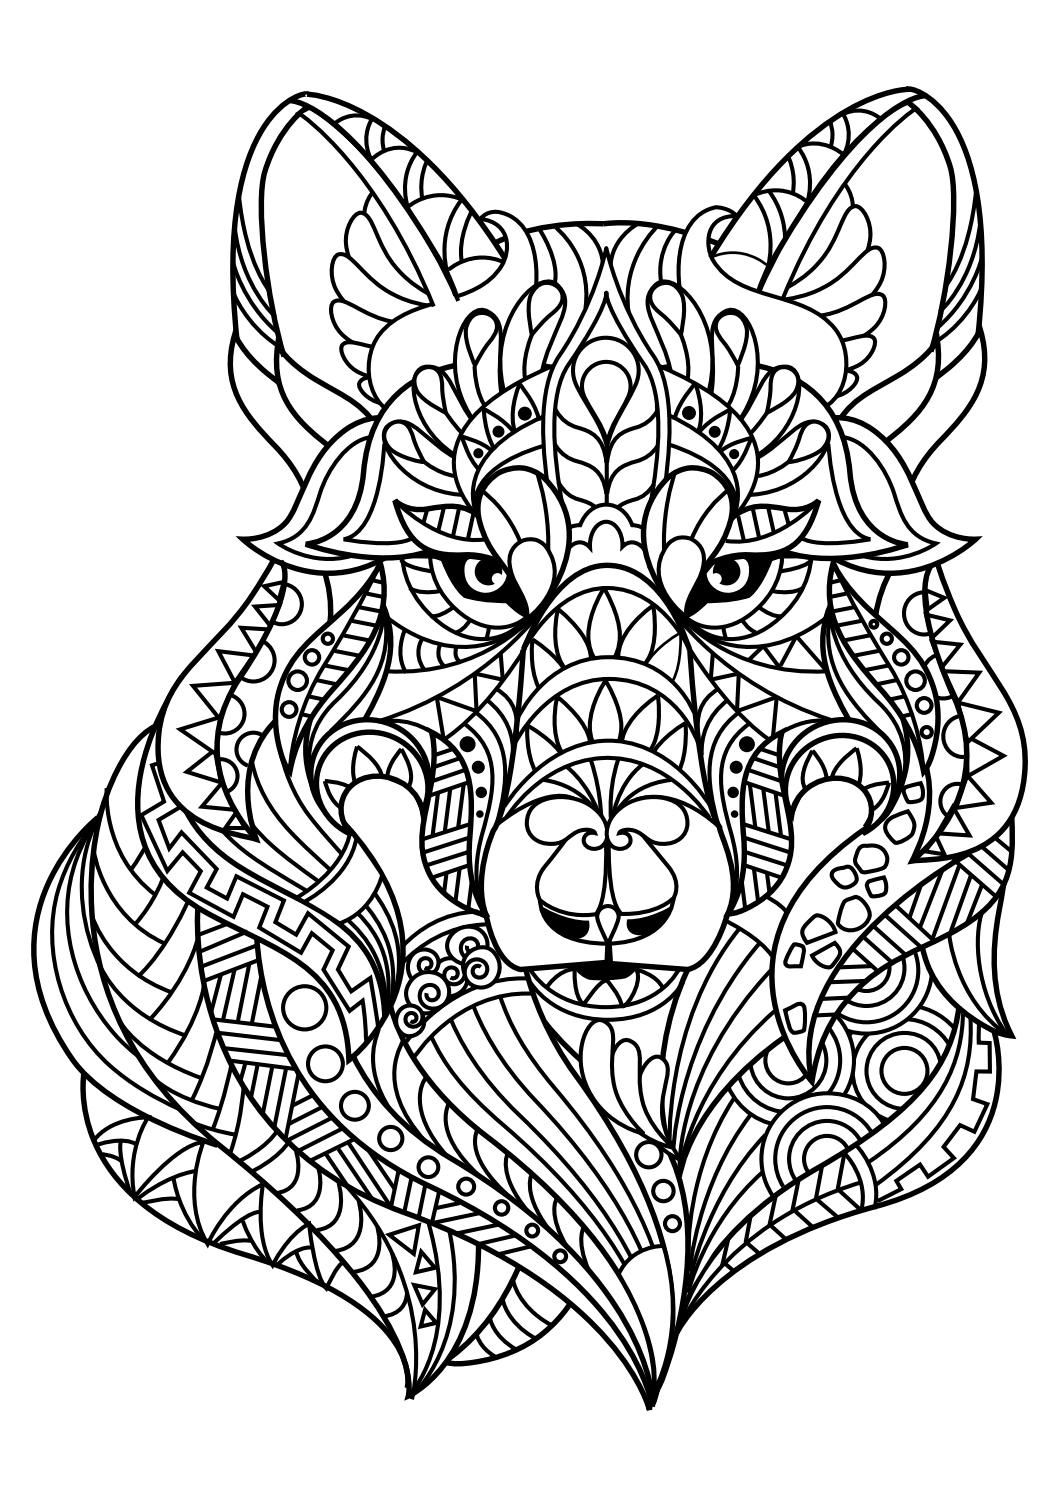 Animal coloring pages pdf | Coloring - Animals | Coloring ...